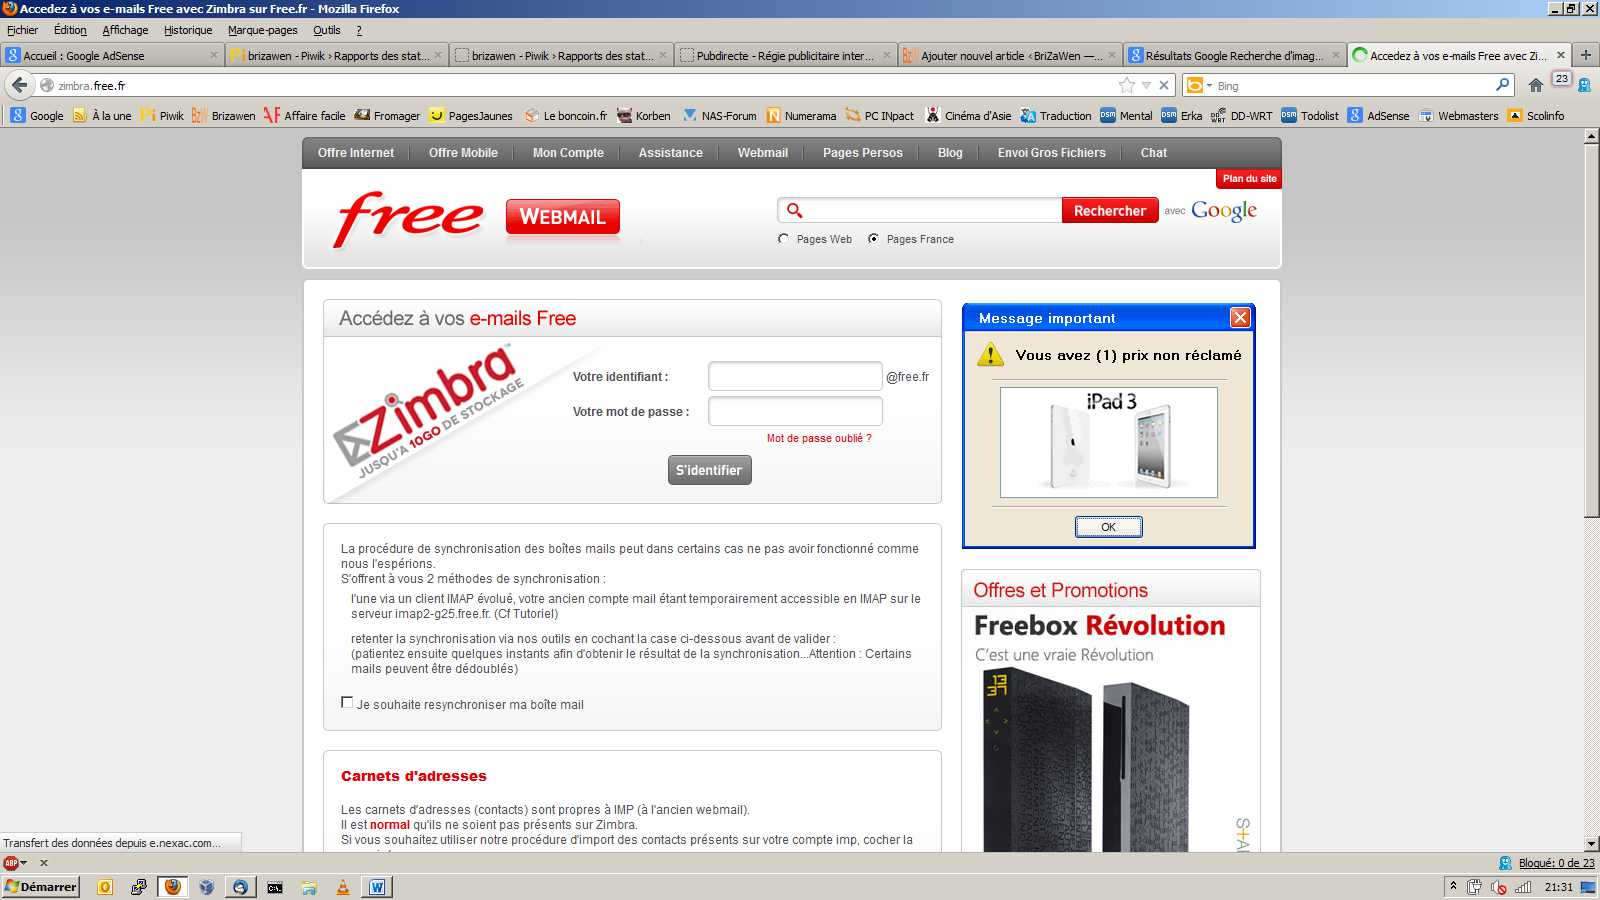 1email Fred Contact Usco Ltd Mail: Free Zimbra Webmail